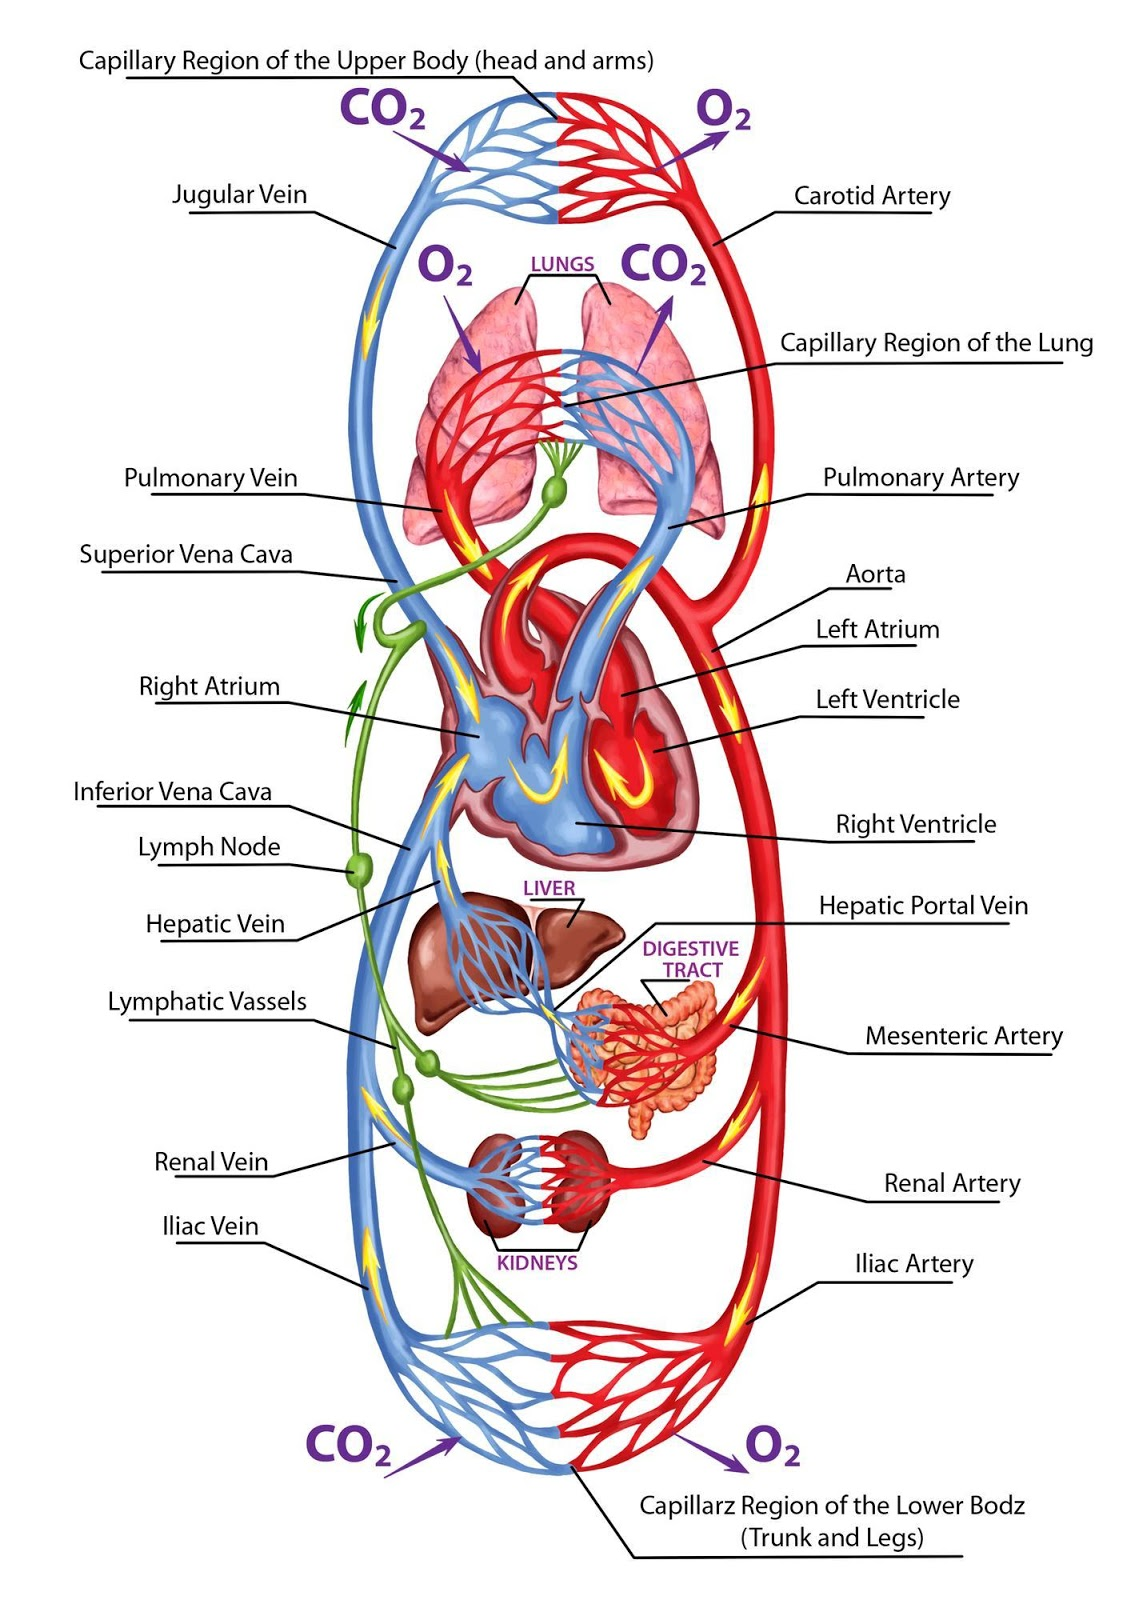 Show arteries and veins